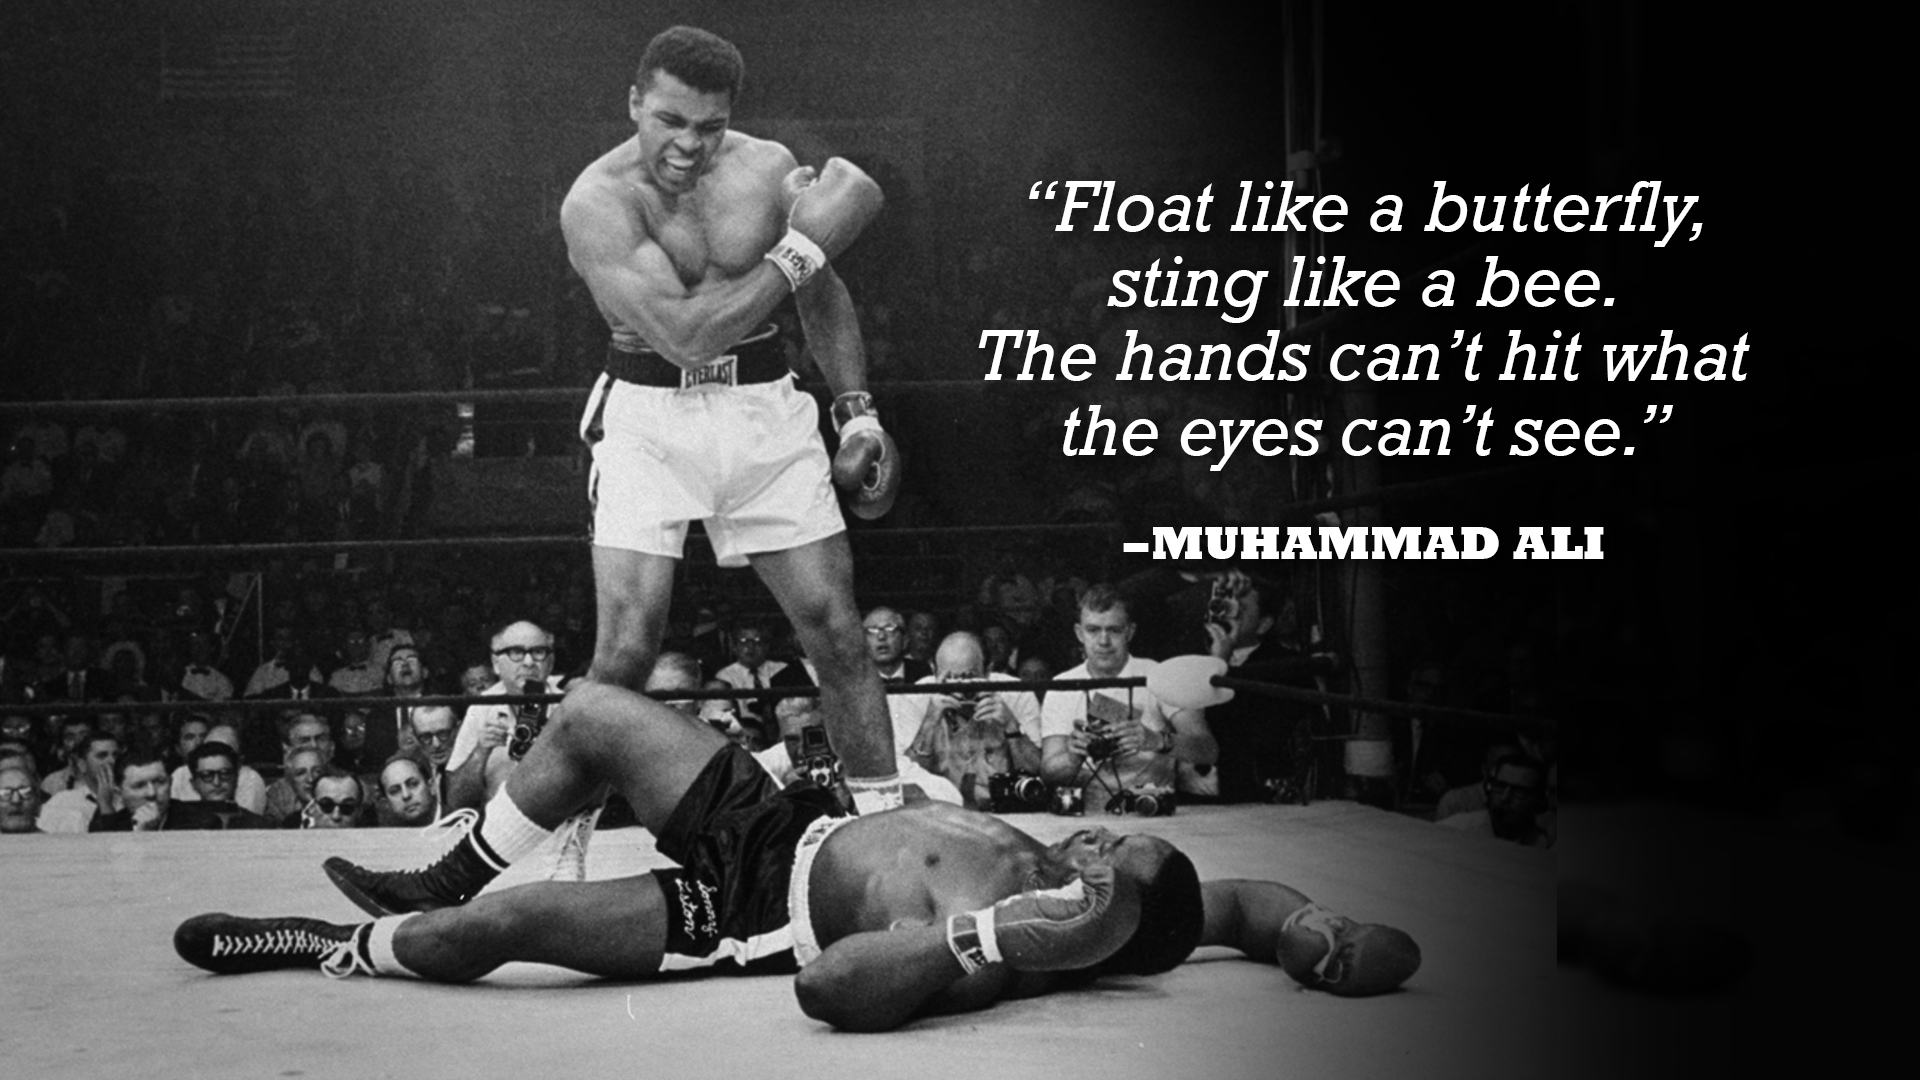 cnn_muhammad-ali-quote.png